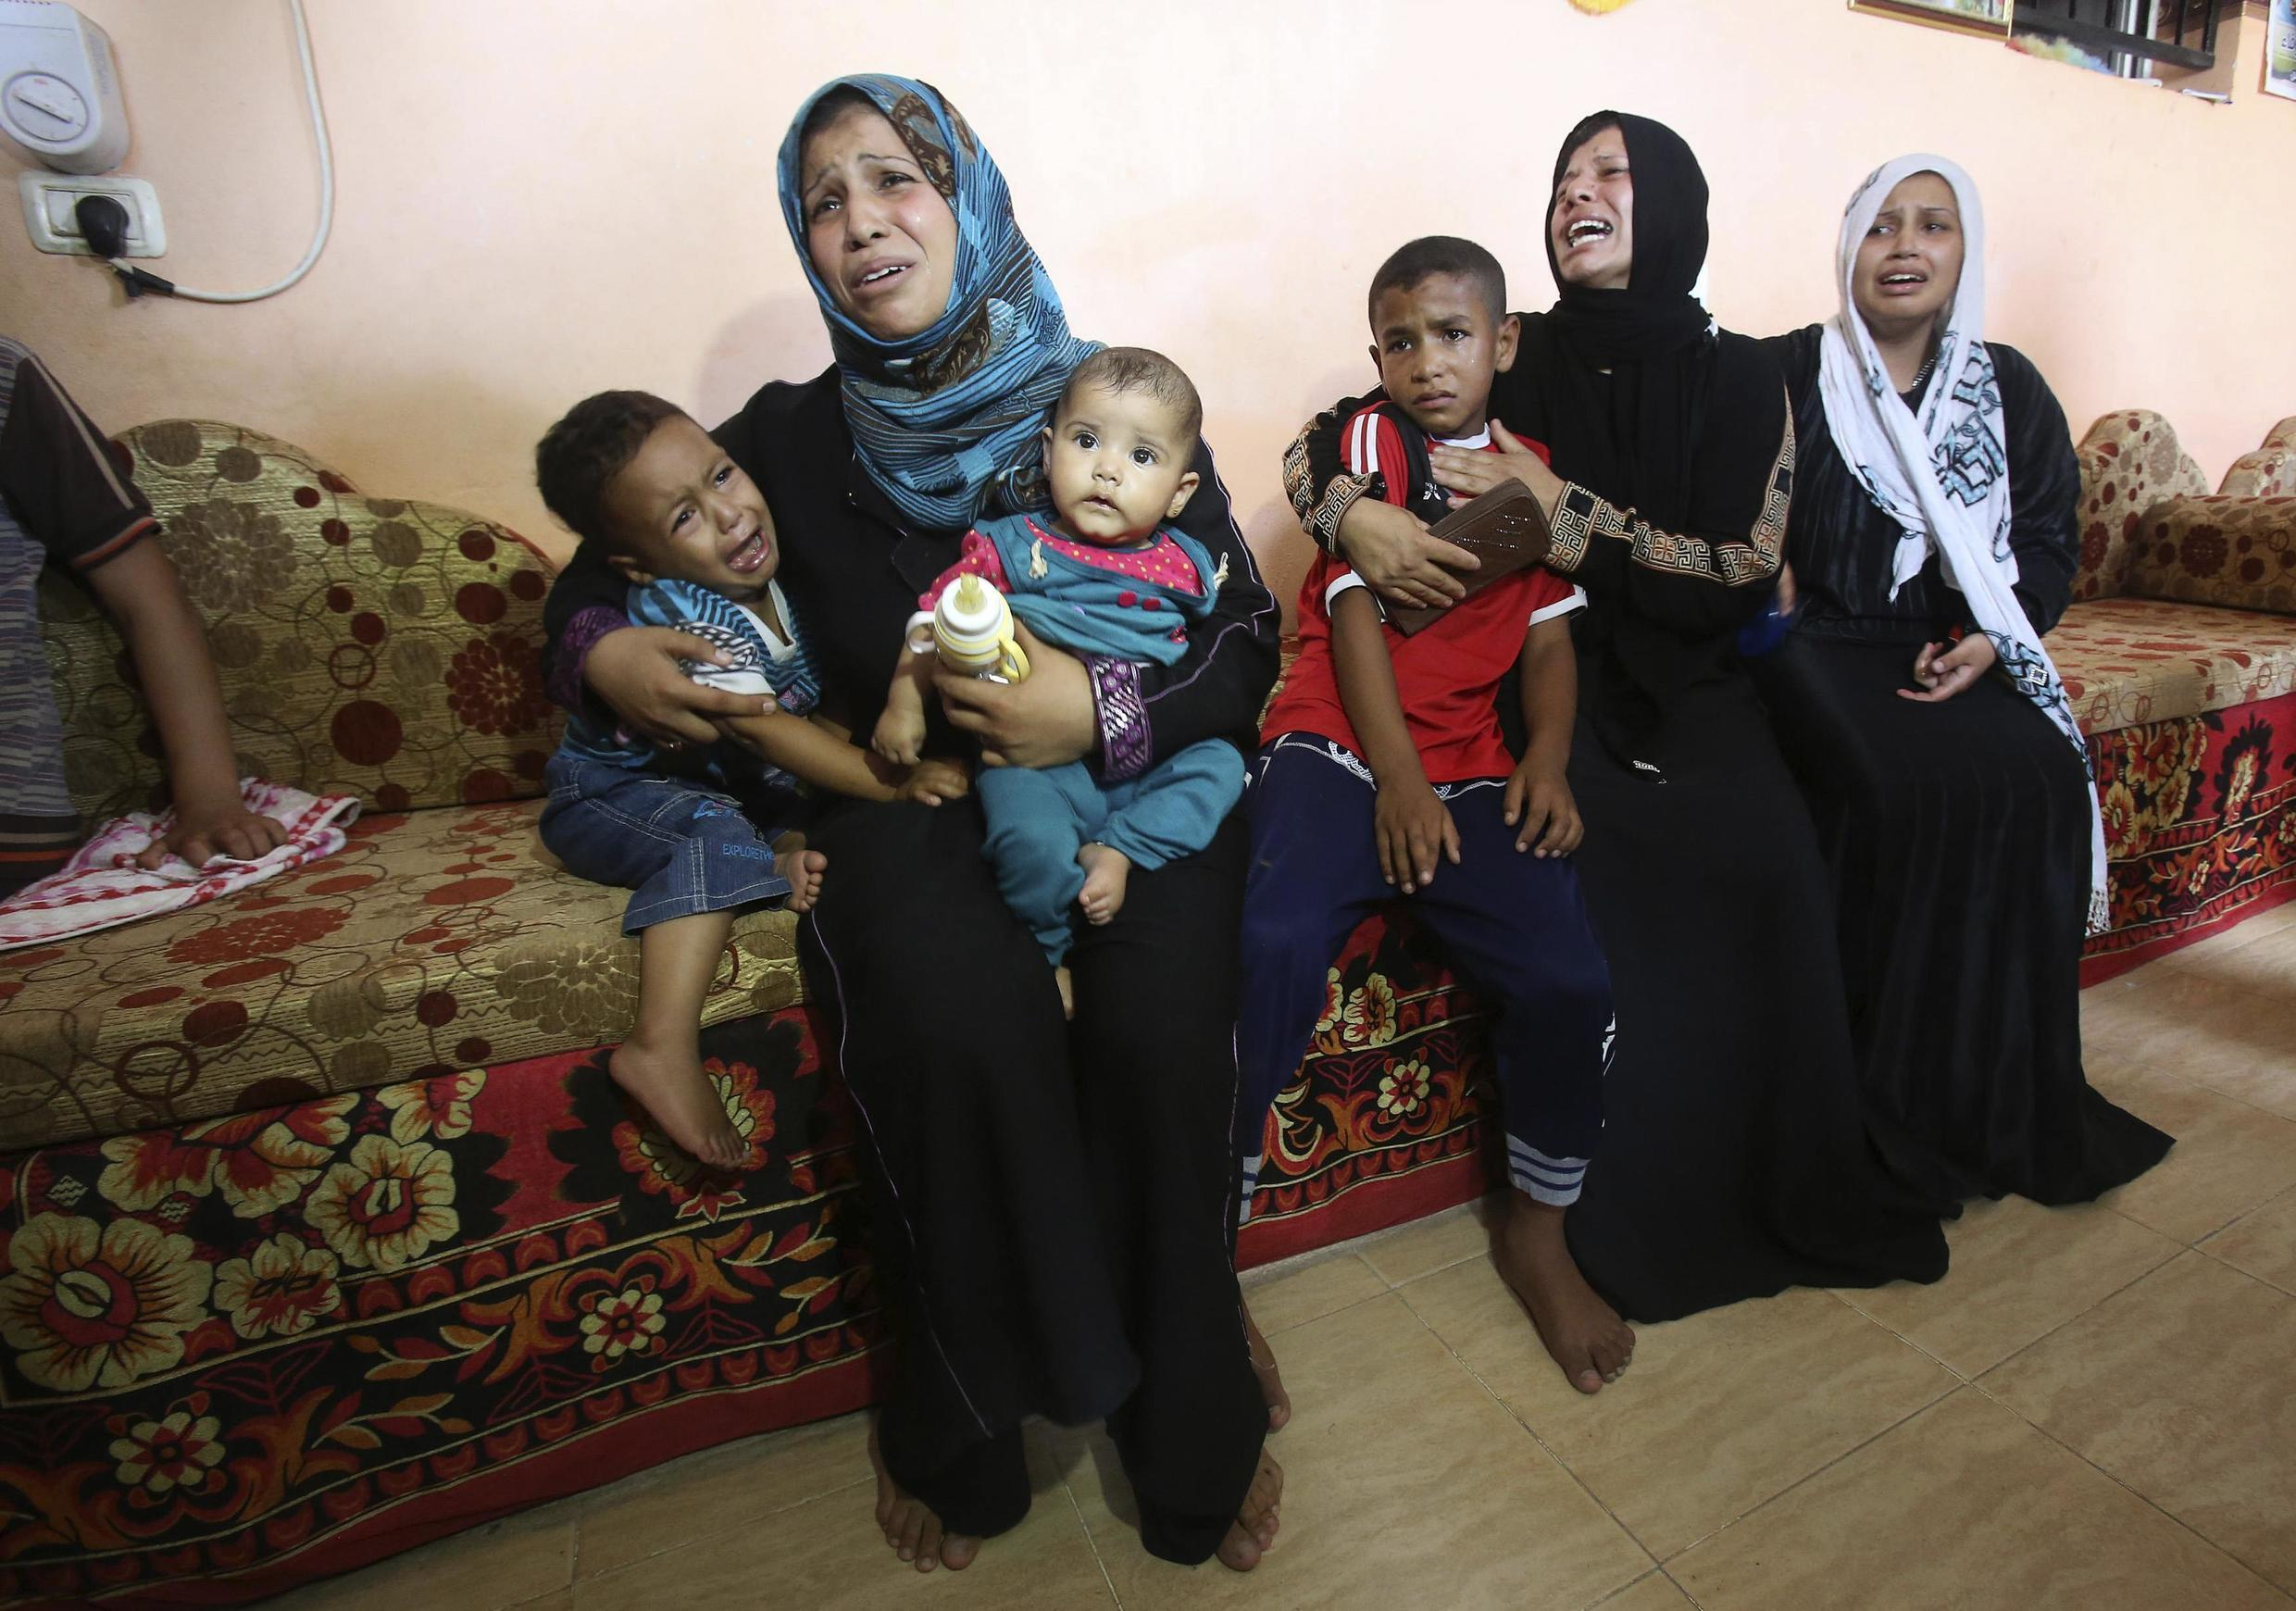 A Palestinian family mourns a four-year-old killed on Sunday